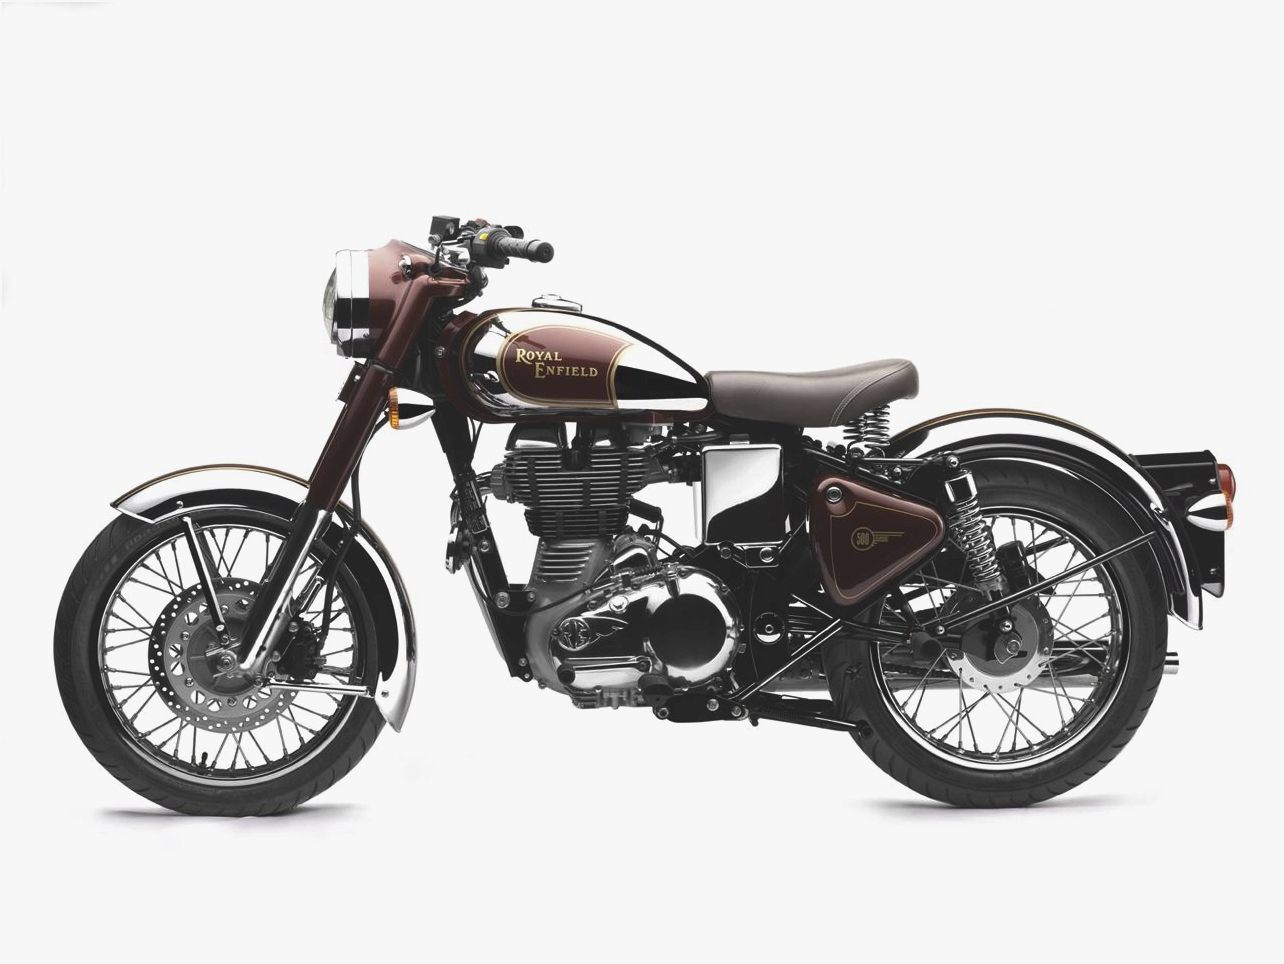 Royal Enfield Bullet 500 Classic images #127682